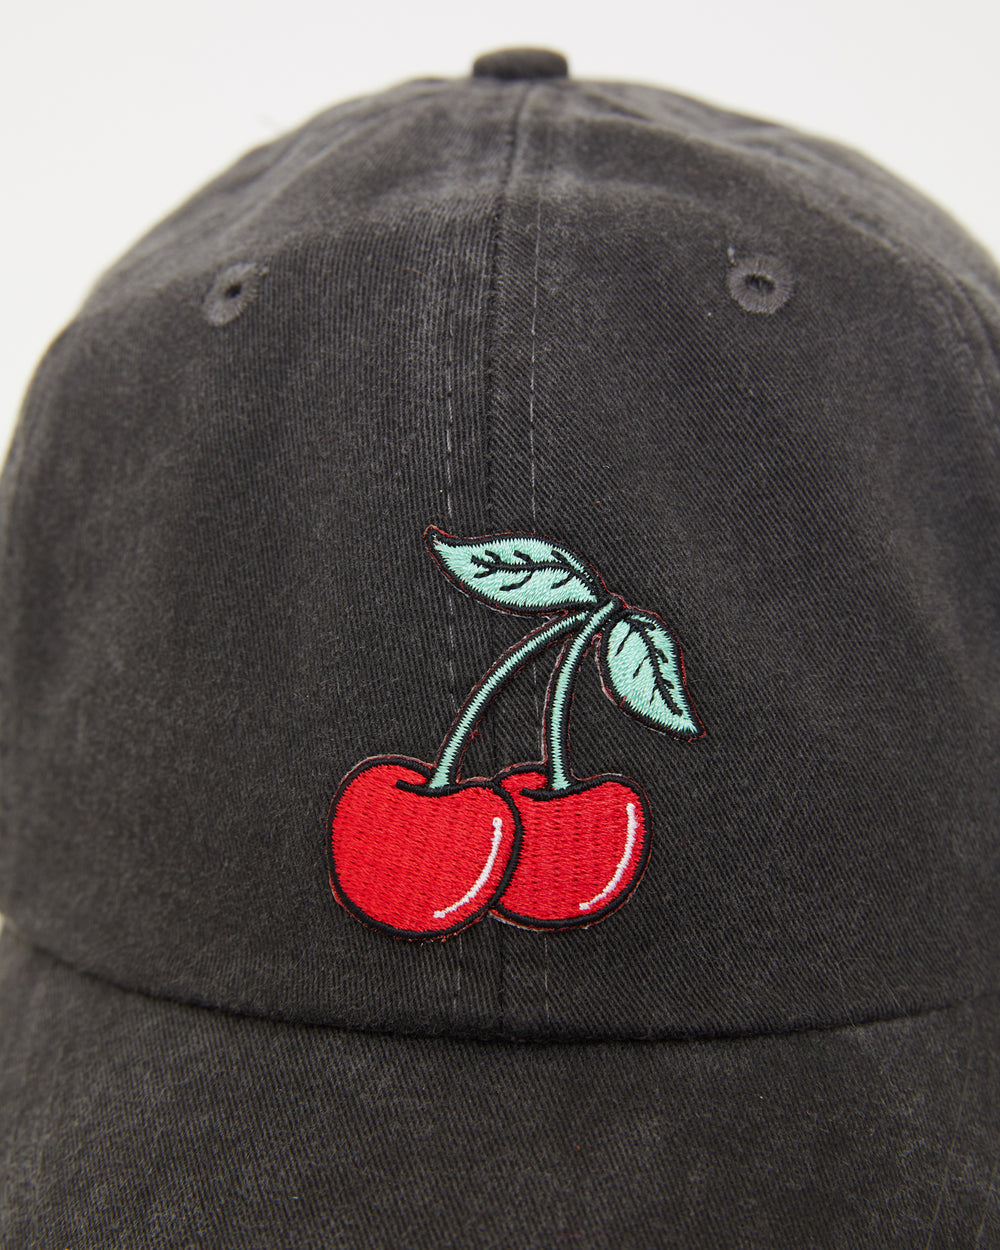 Cherries Baseball Cap